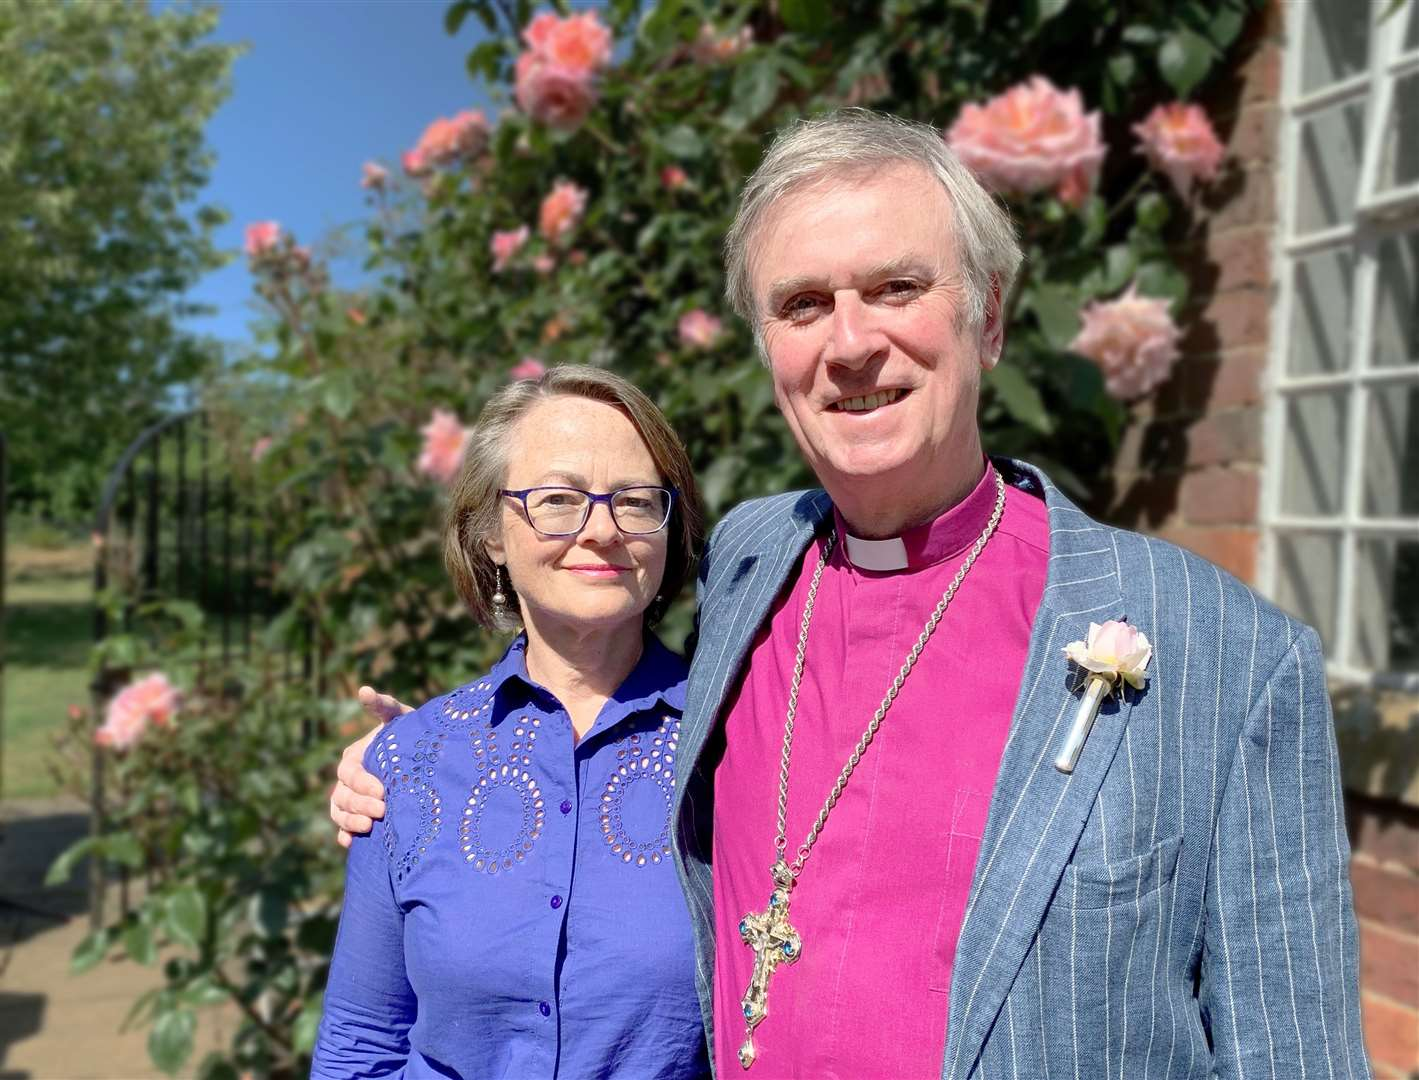 The Bishop of Lynn, the Rt Rev Jonathan Meyrick, with his wife Rebecca